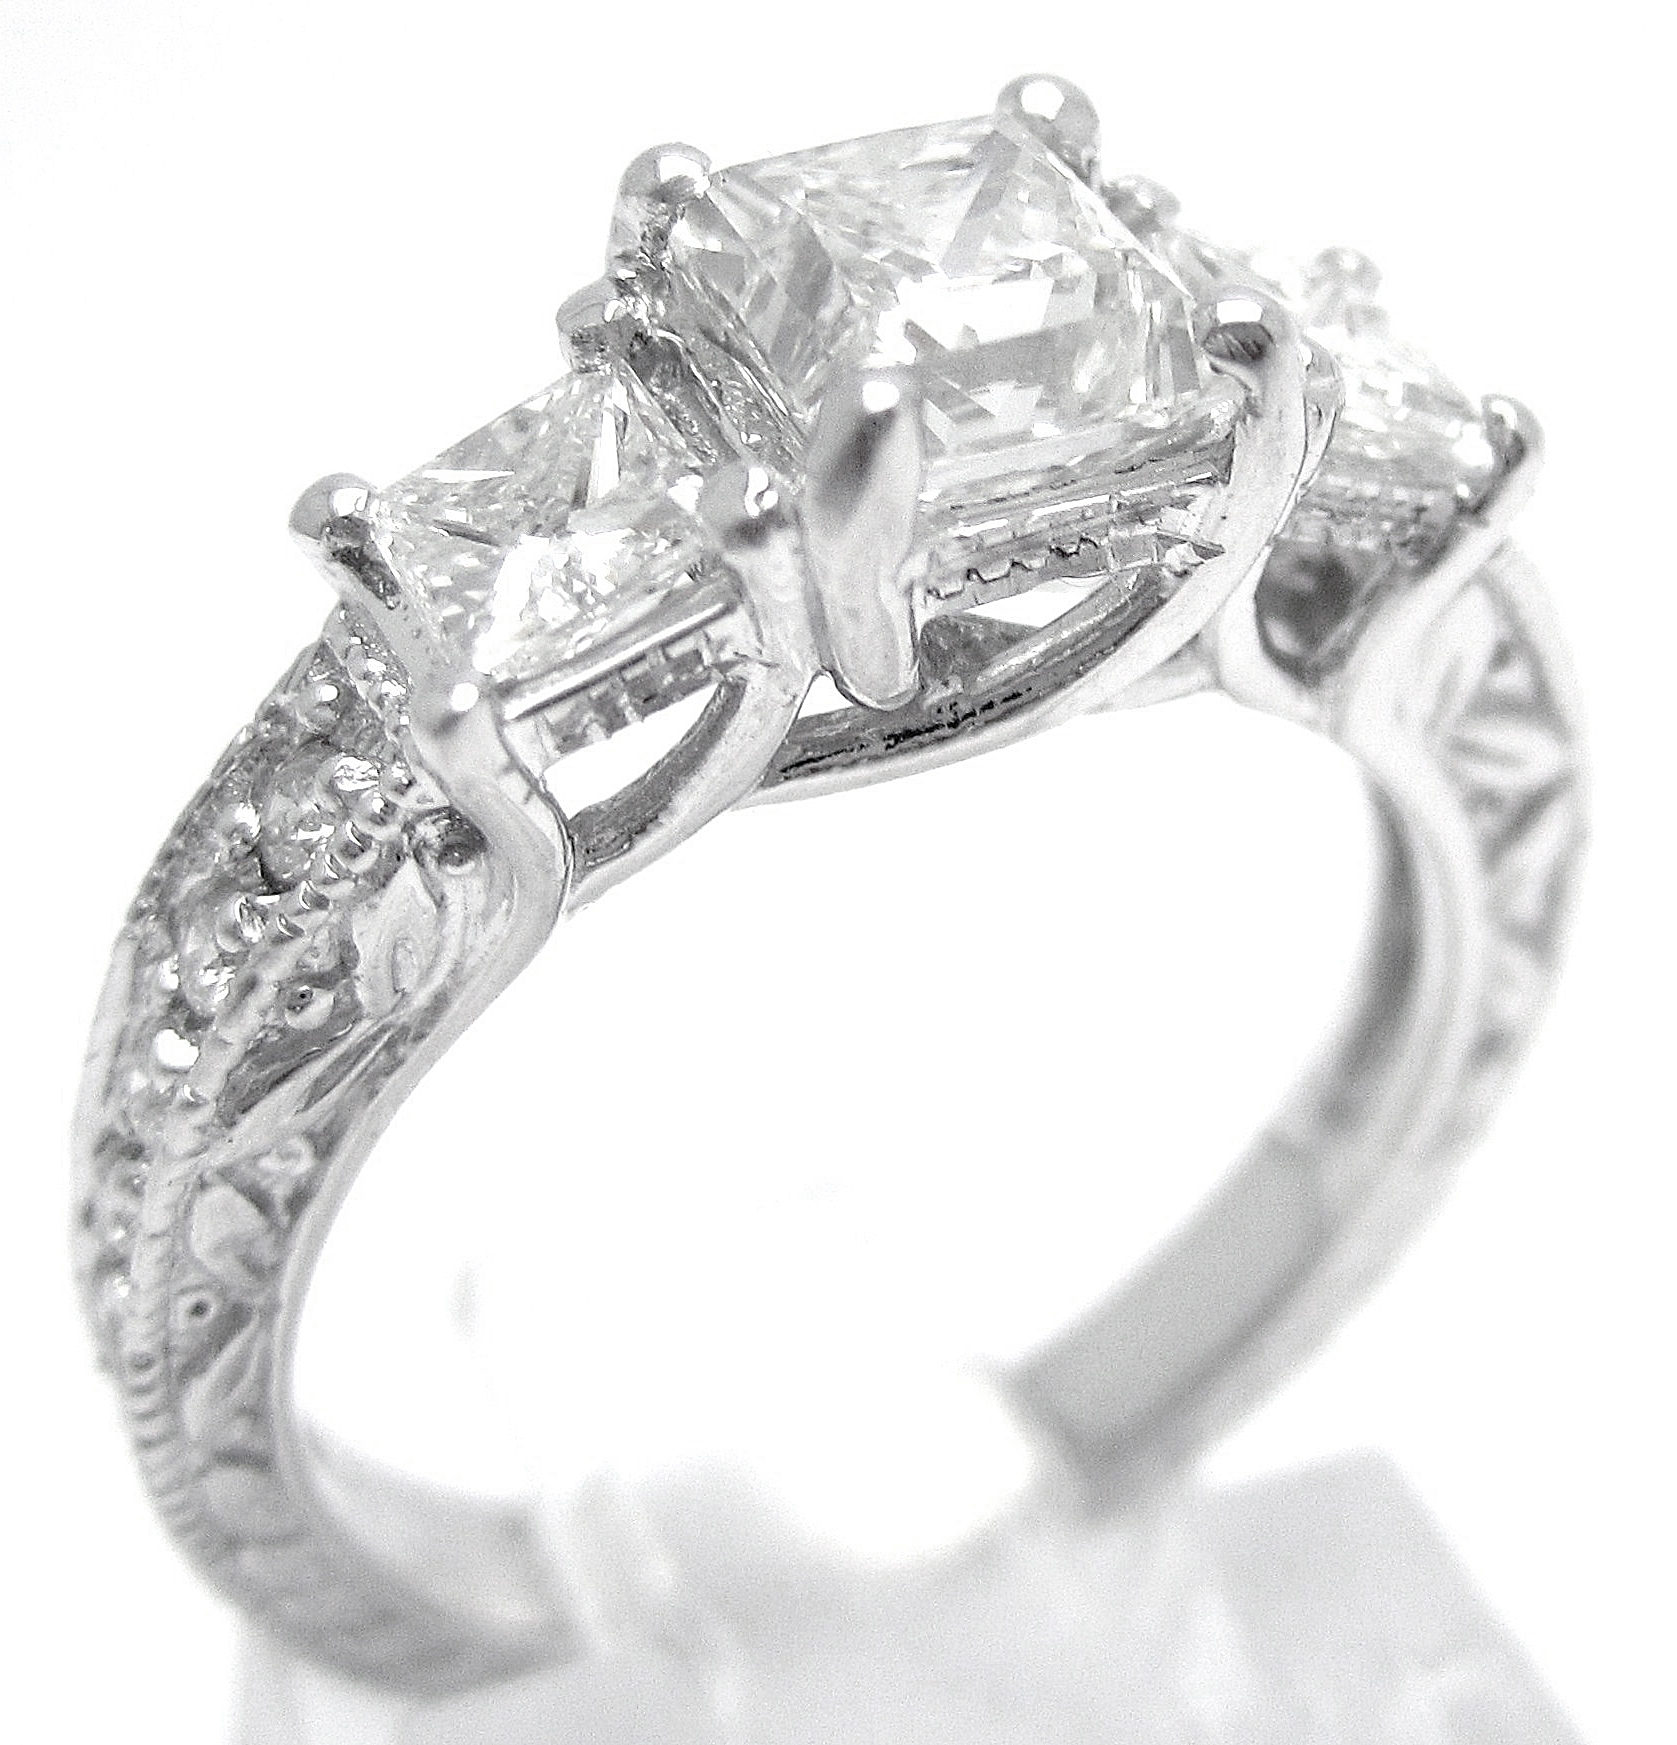 Princess Cut Three Stone Antique Style Diamond Engagement Ring With In Most Recent Vintage Style Princess Cut Diamond Engagement Rings (View 2 of 15)